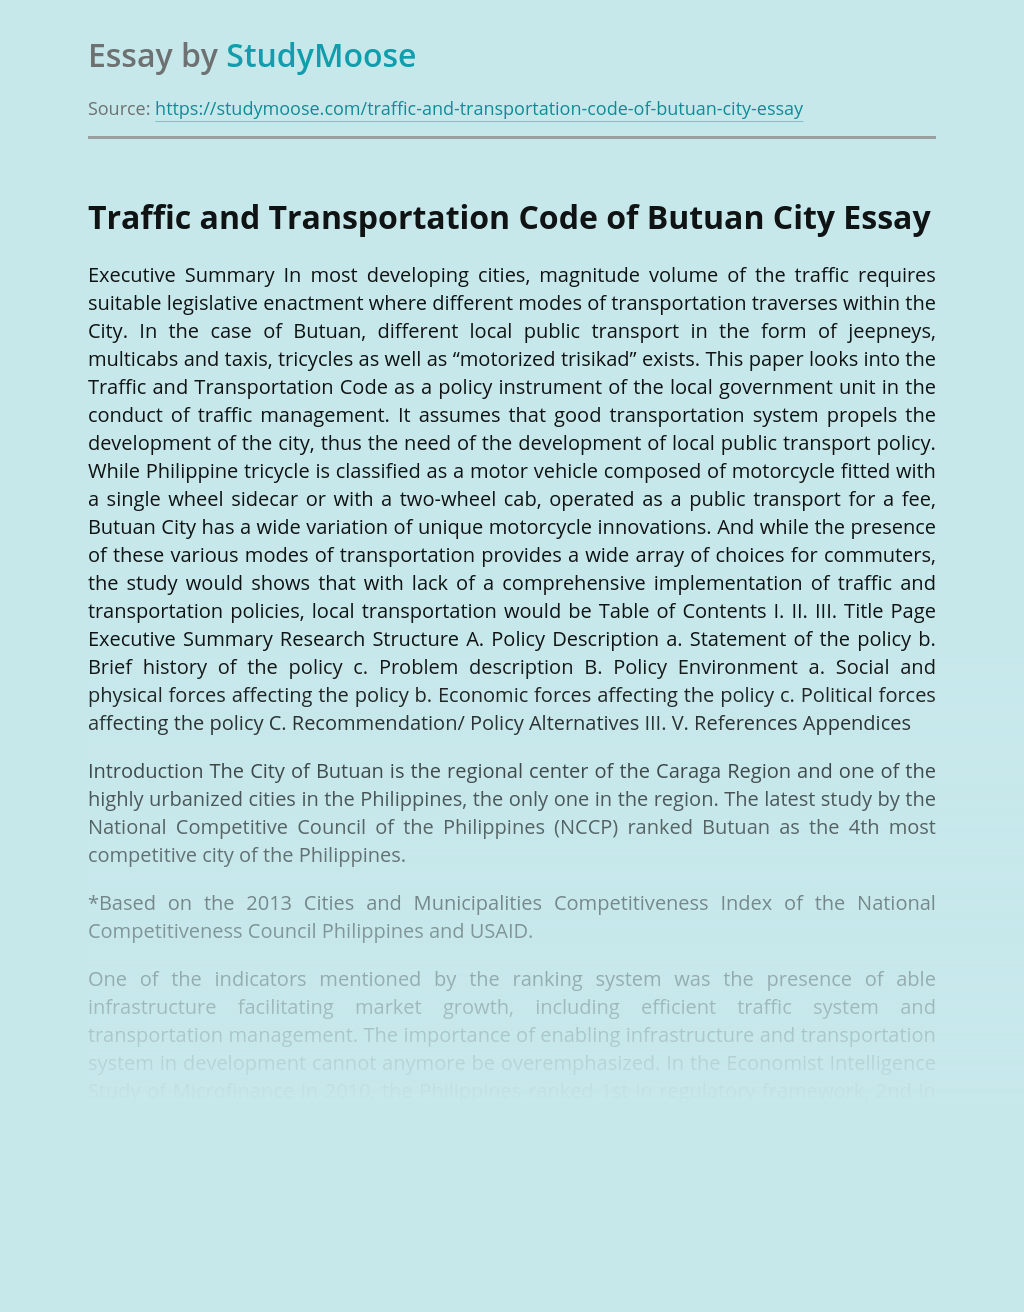 Traffic and Transportation Code of Butuan City